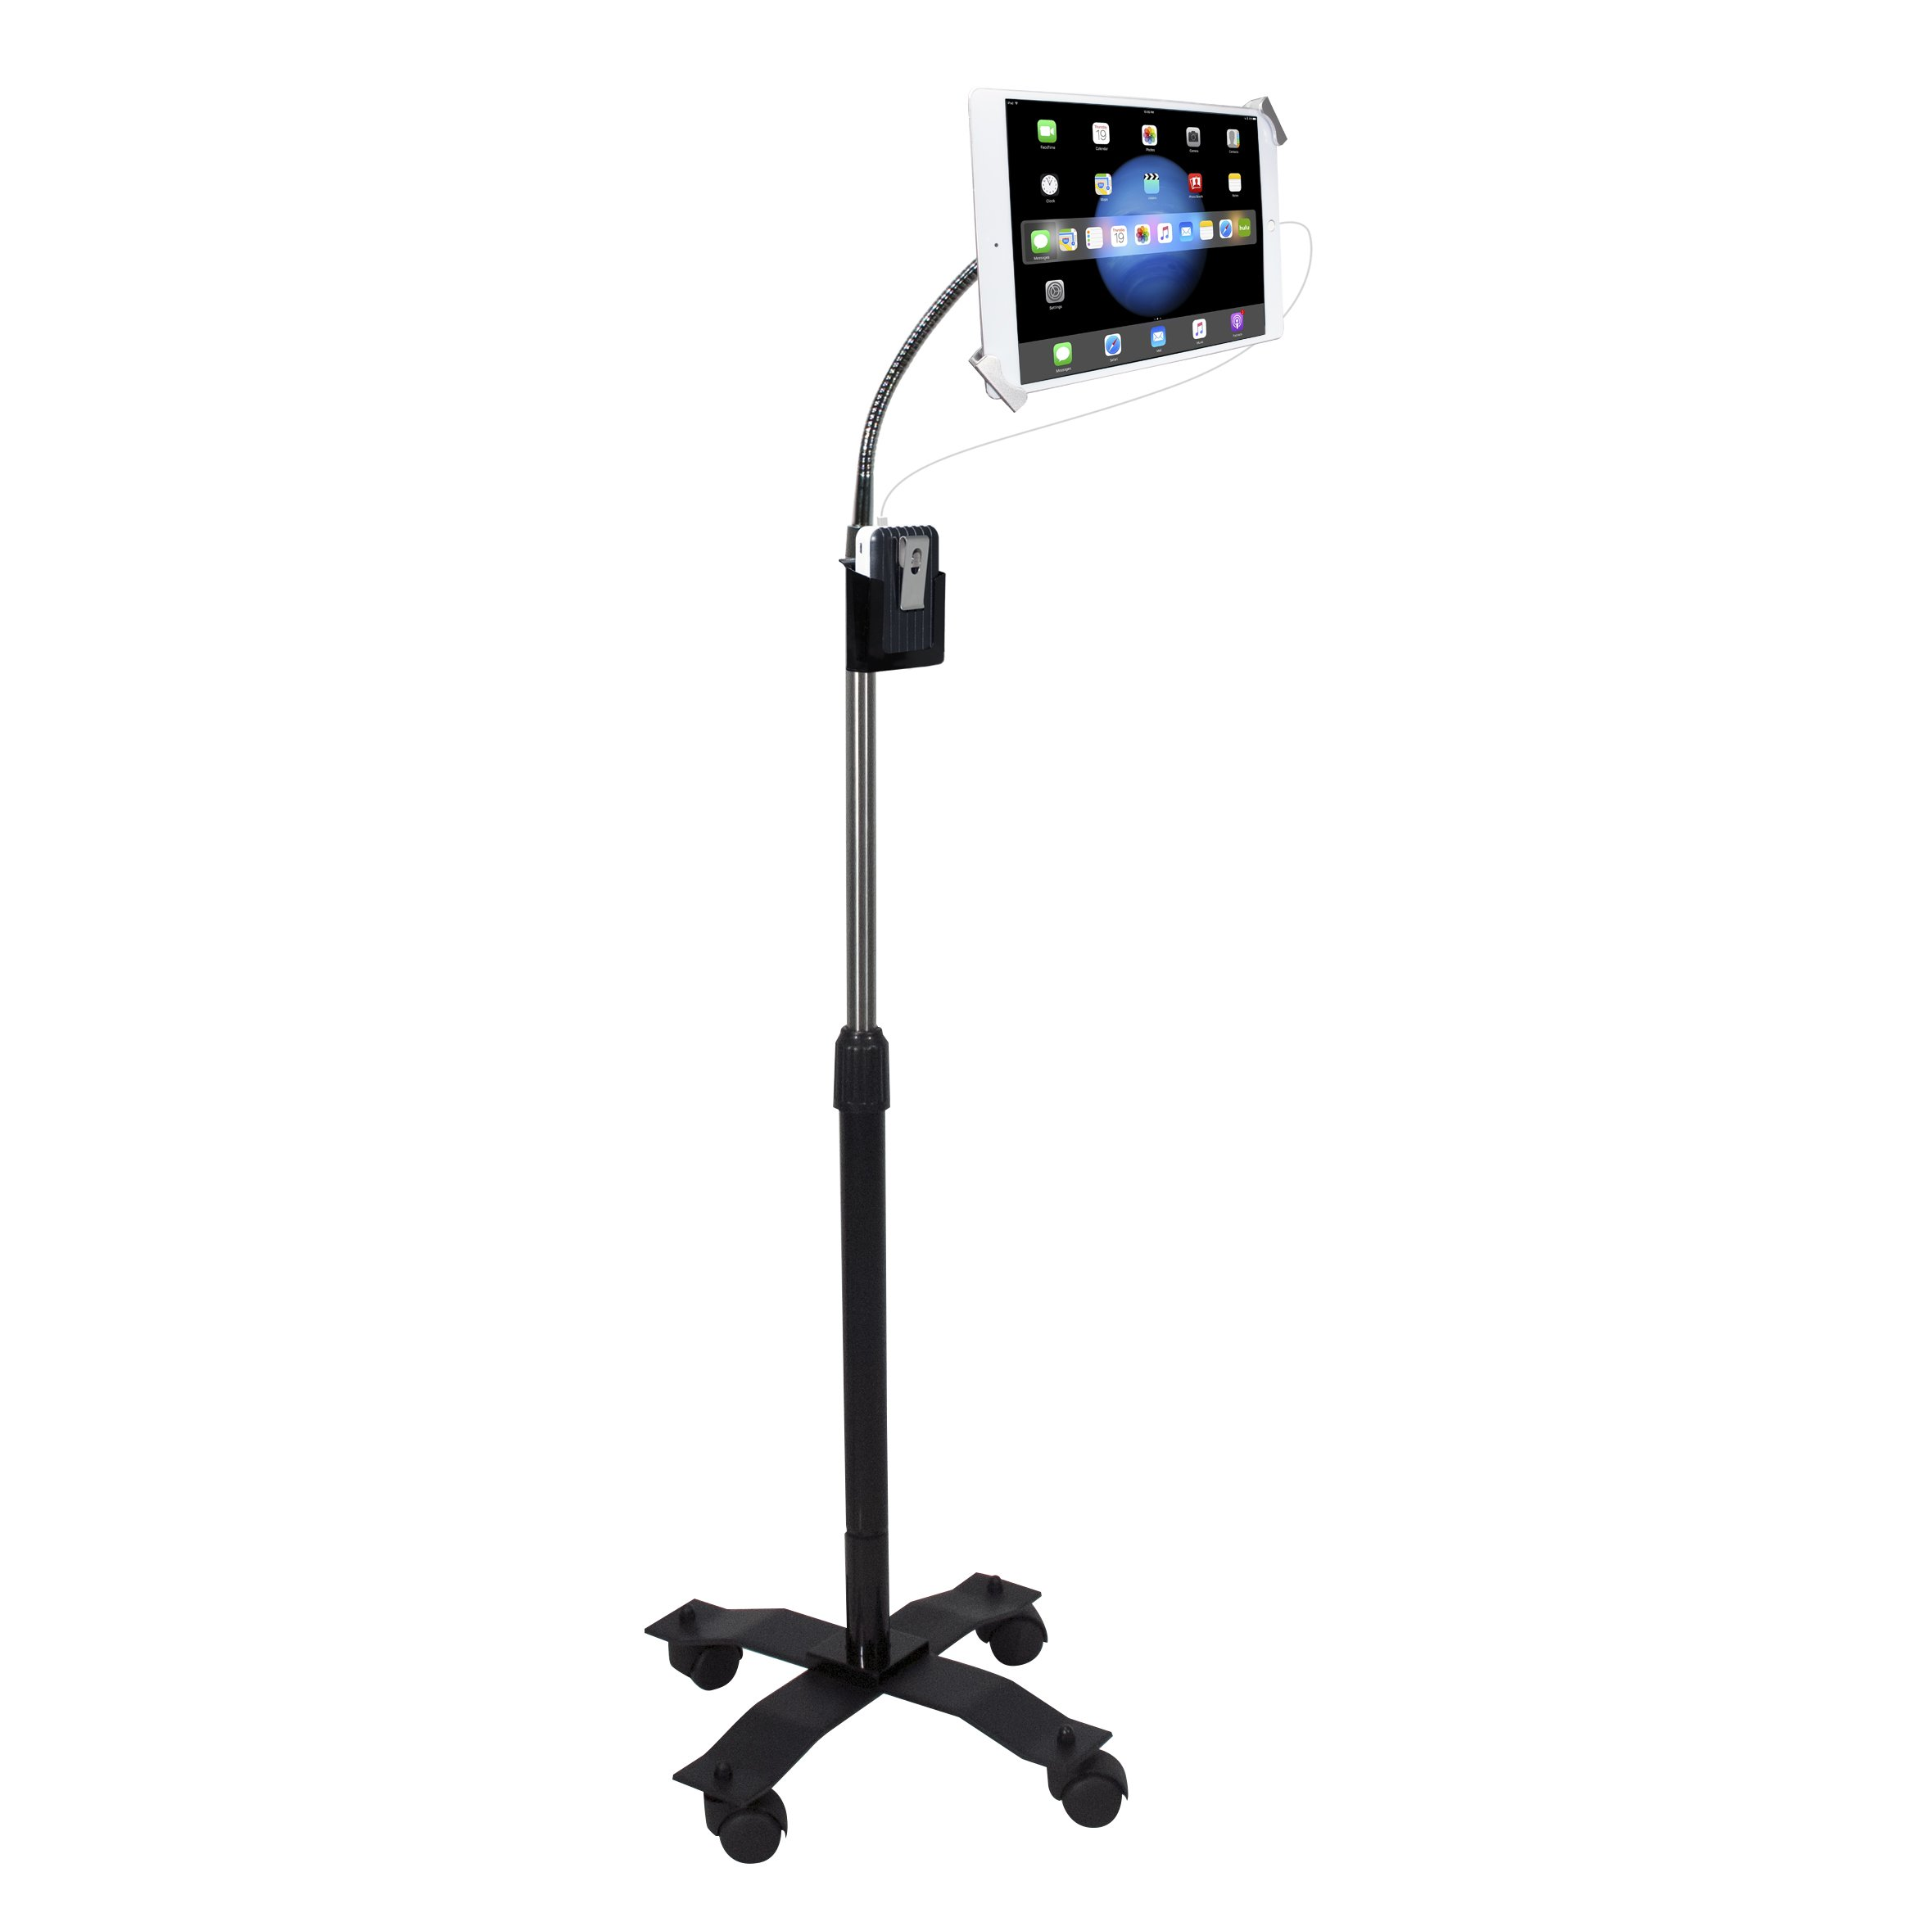 CTA Digital Compact Security Gooseneck Floor Stand for 7-13 Inch Tablets/iPad Pro 9.7, 10.5, 12.9/iPad (2017)/iPad mini/Surface Pro 4